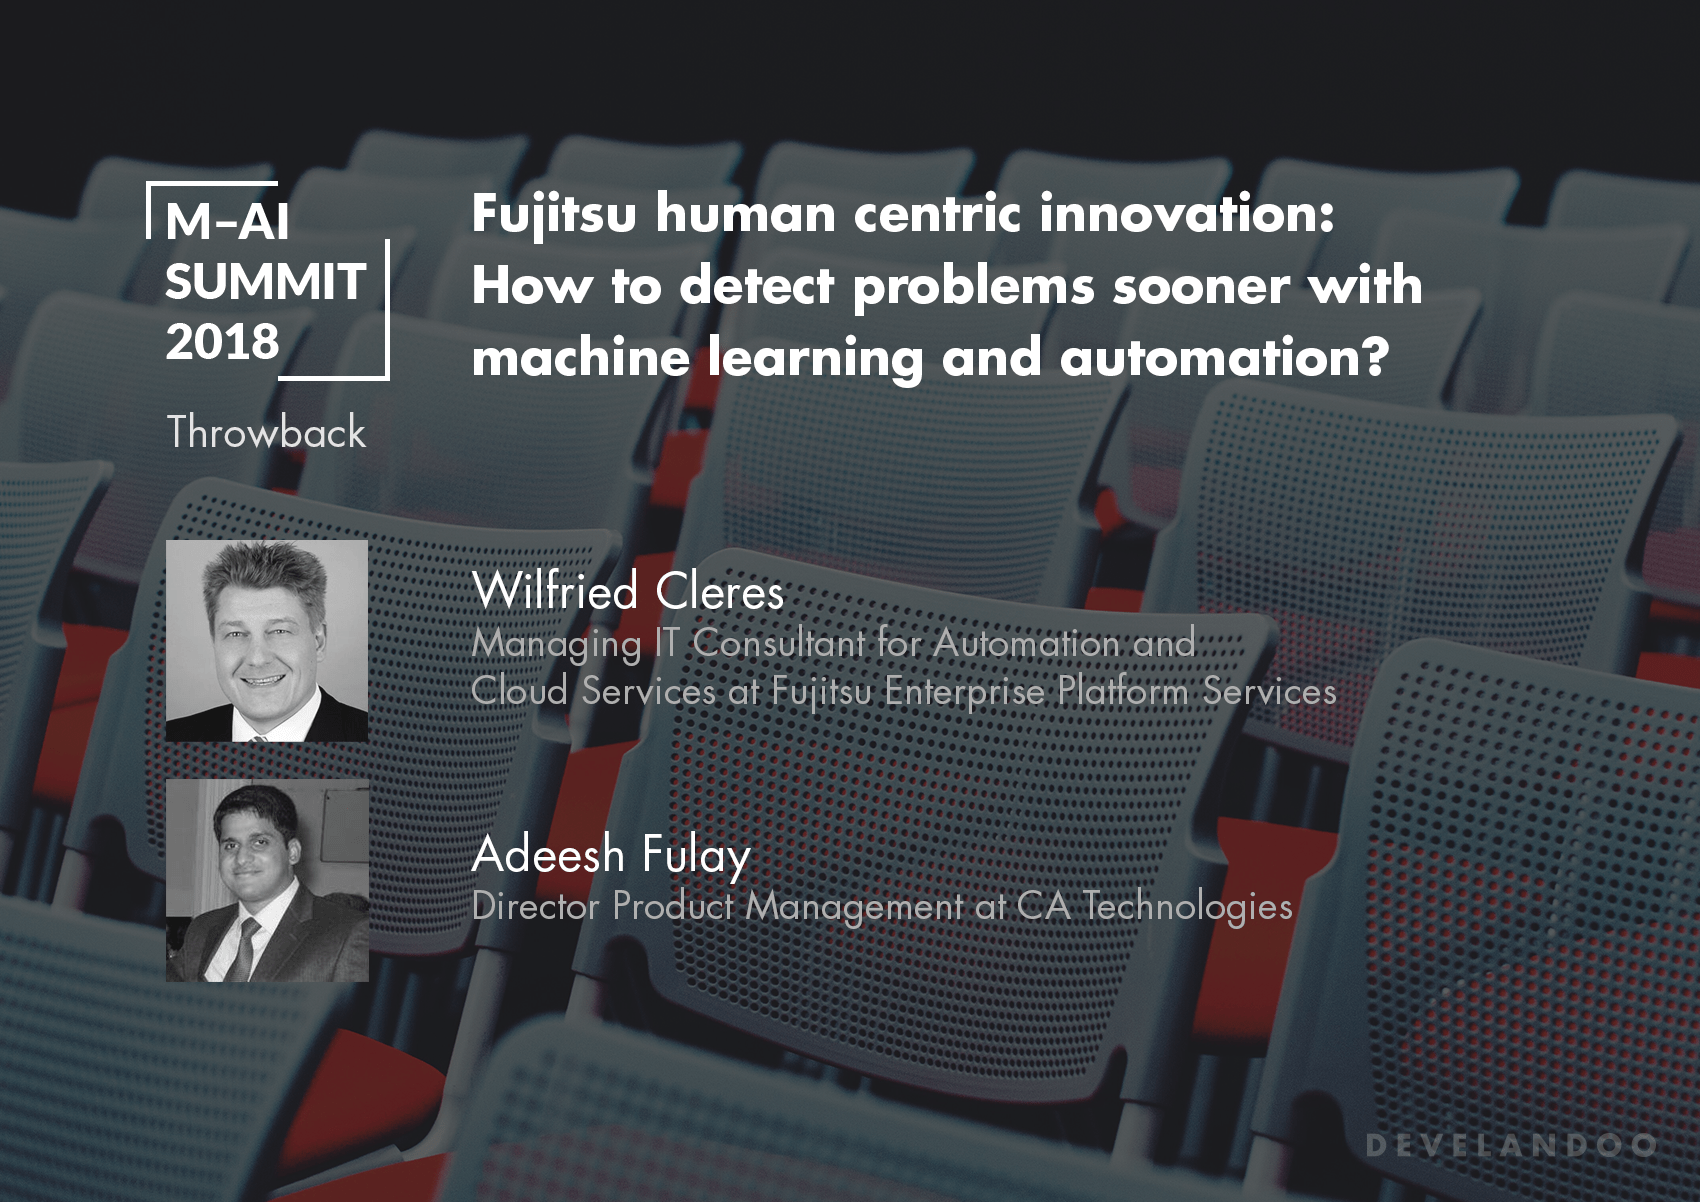 Fujitsu Human Centric AI: Our Speakers Talk about How to Detect Problems Sooner with Machine Learning and Automation